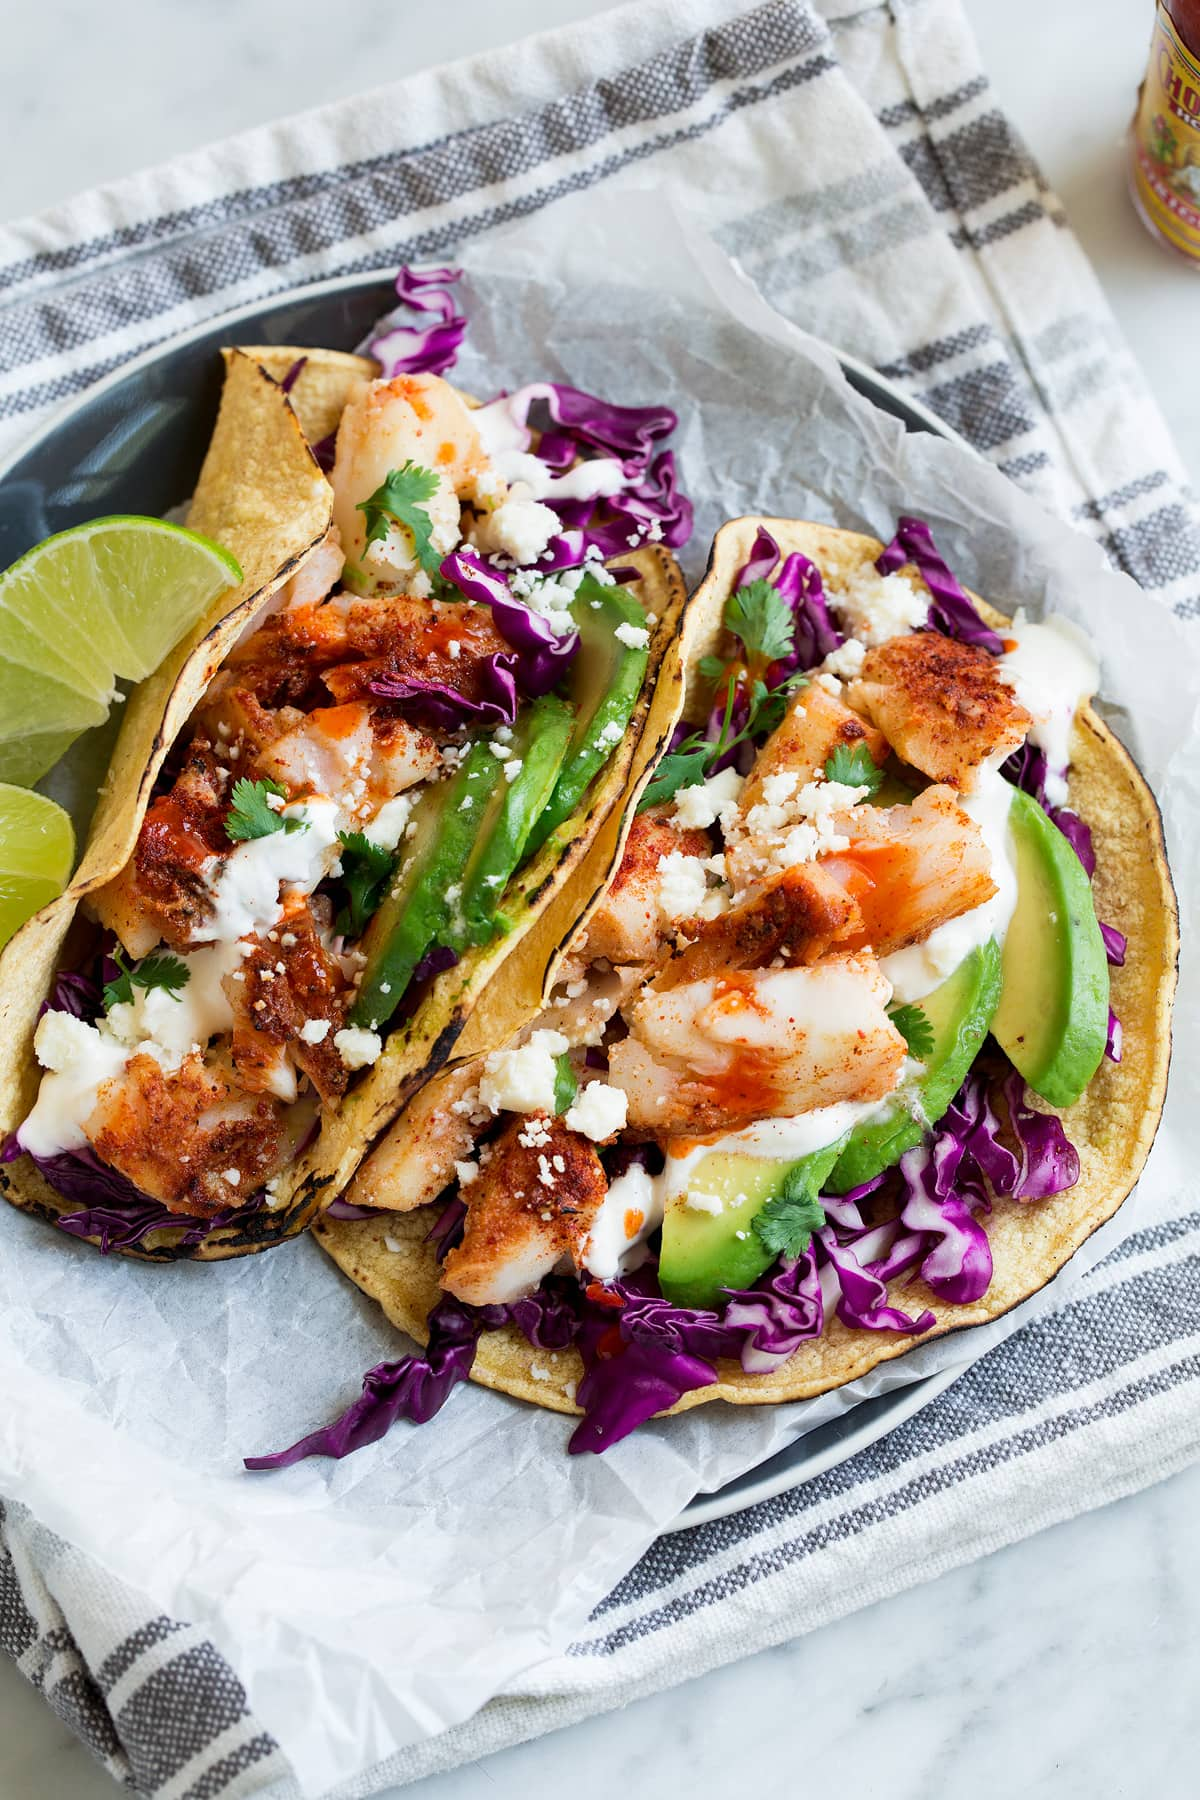 Two fish tacos on parchment paper on a plate.